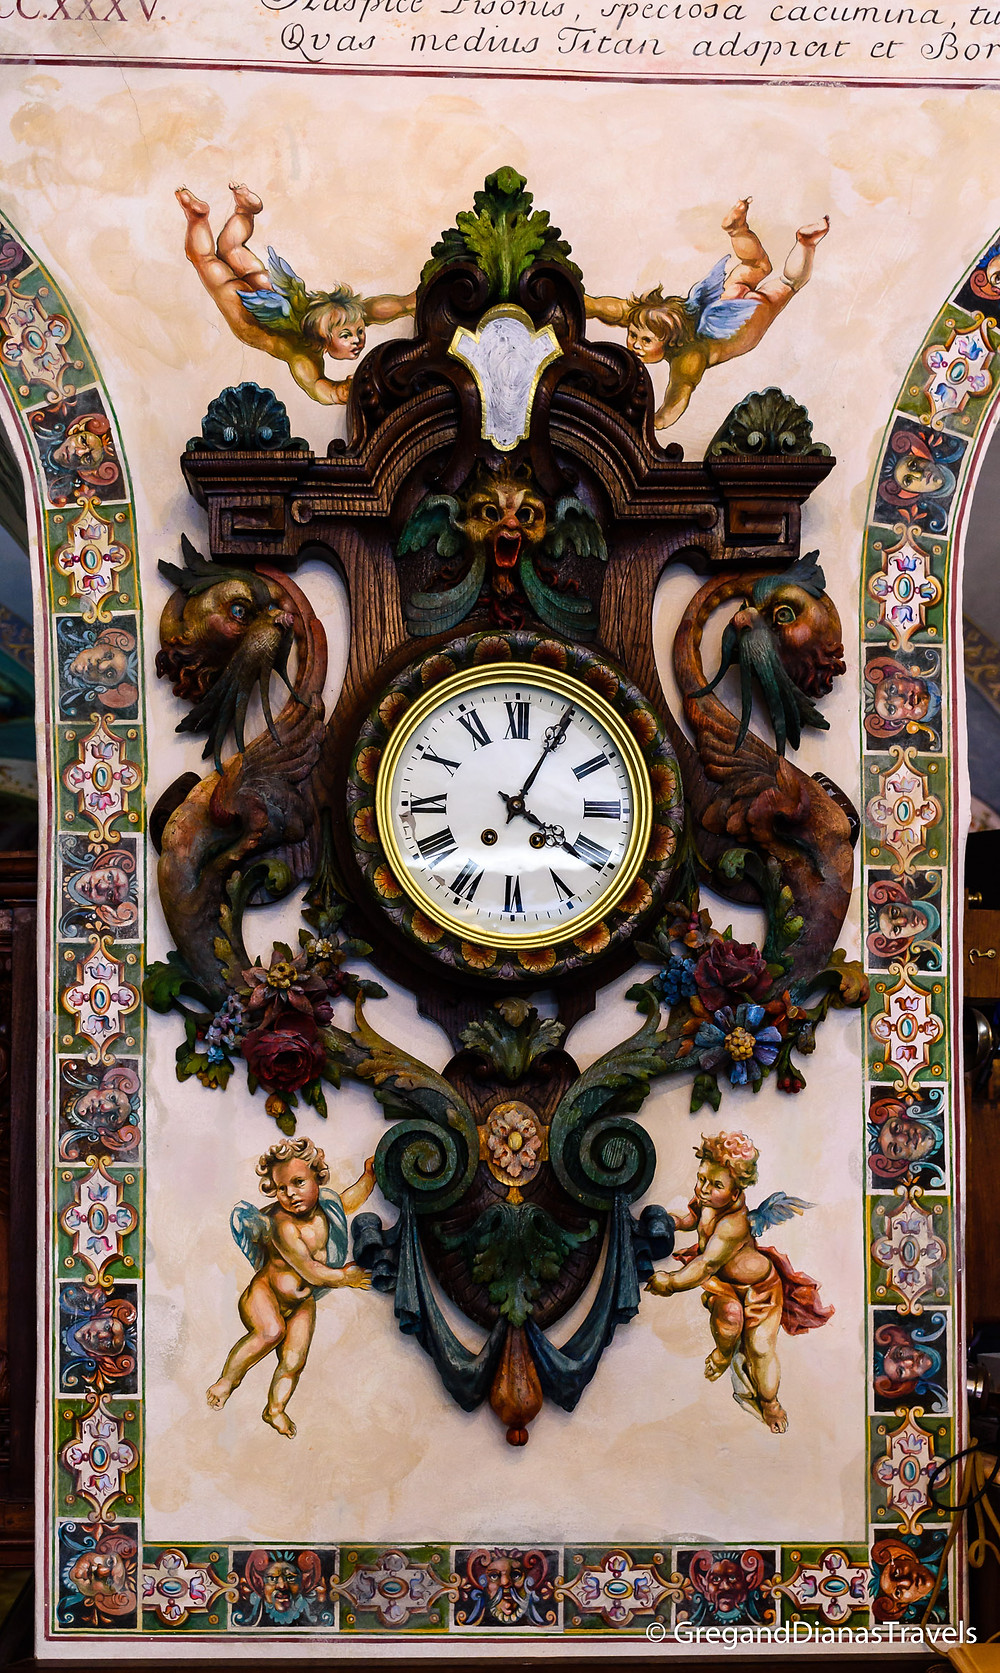 Wooden carved clock with angels, Kormuth Patisserie Bratislava, Bratislava Slovakia, Travelblog